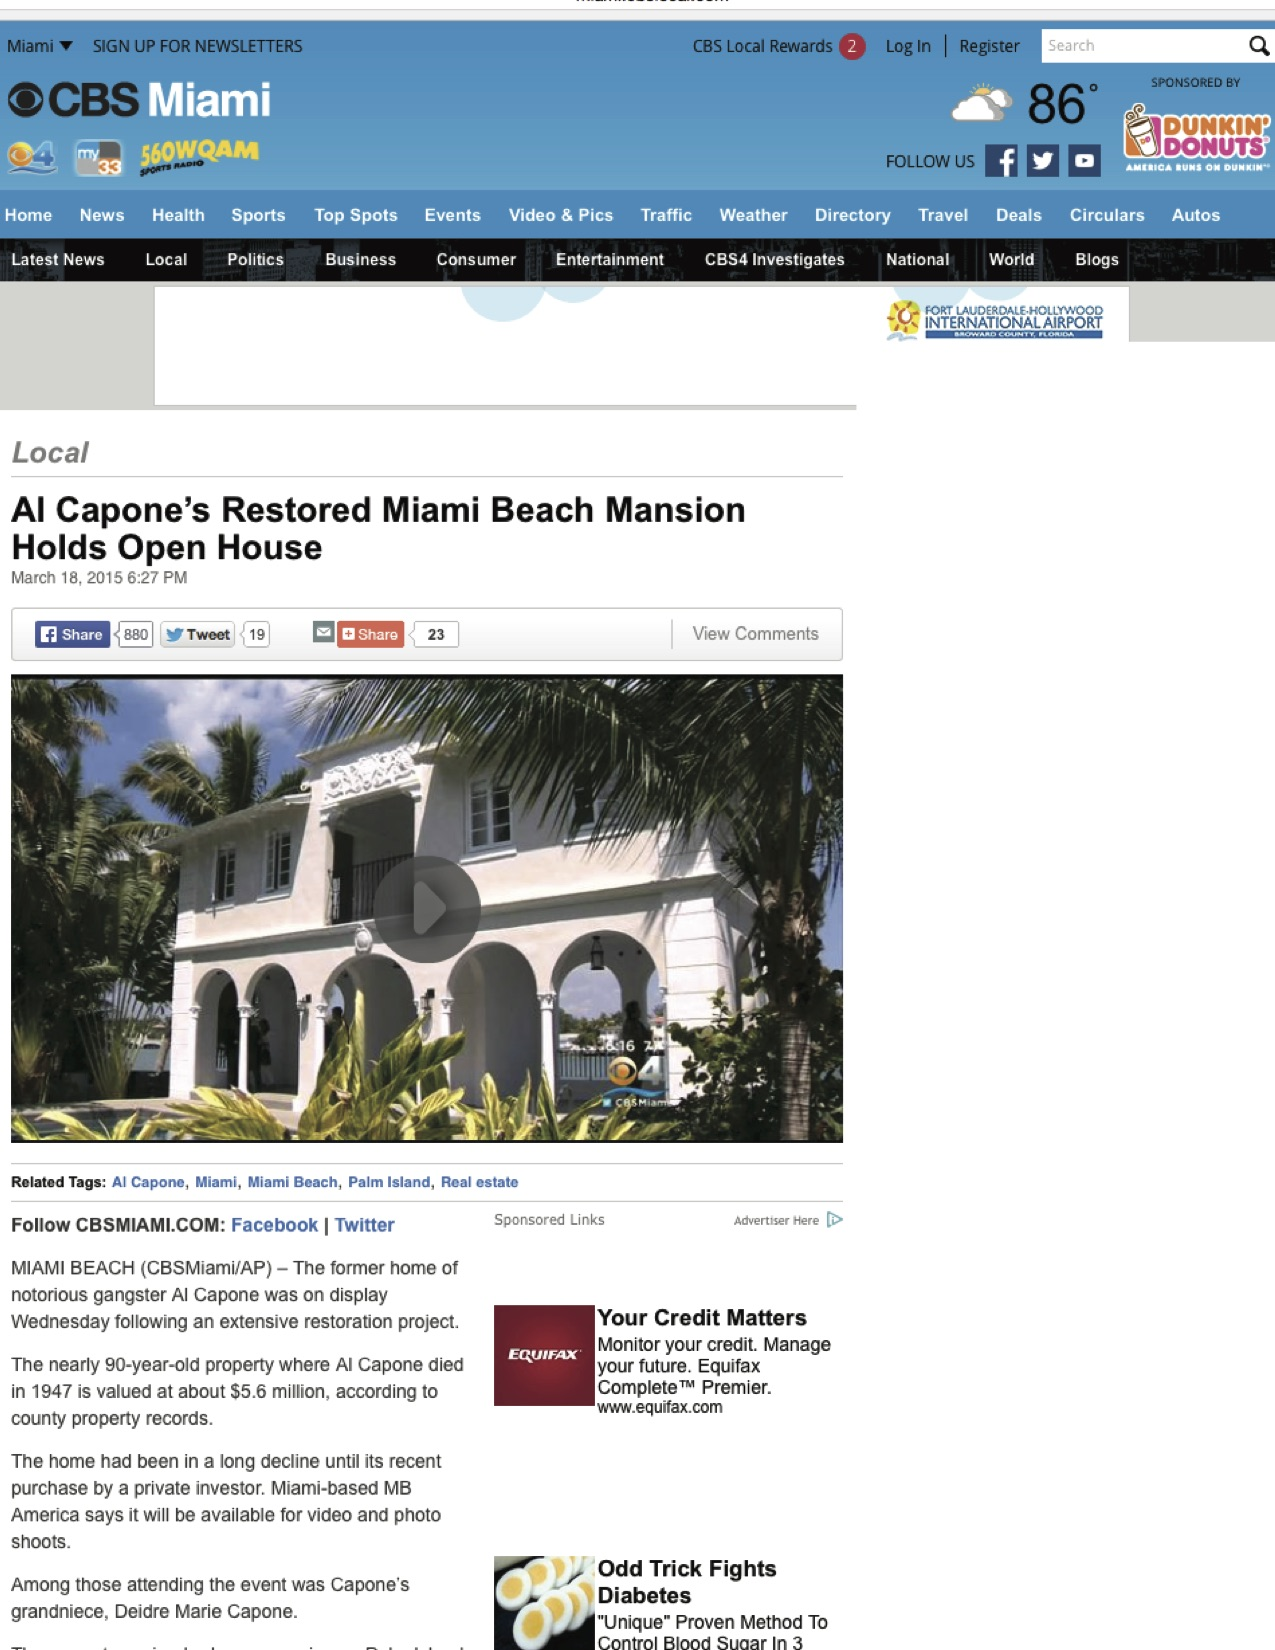 """<p><strong>CBS Miami</strong><a href=""""http://miami.cbslocal.com/2015/03/18/al-capones-restored-miami-beach-mansion-holding-open-house/"""" target=""""_blank"""">Watch Video→</a></p>"""